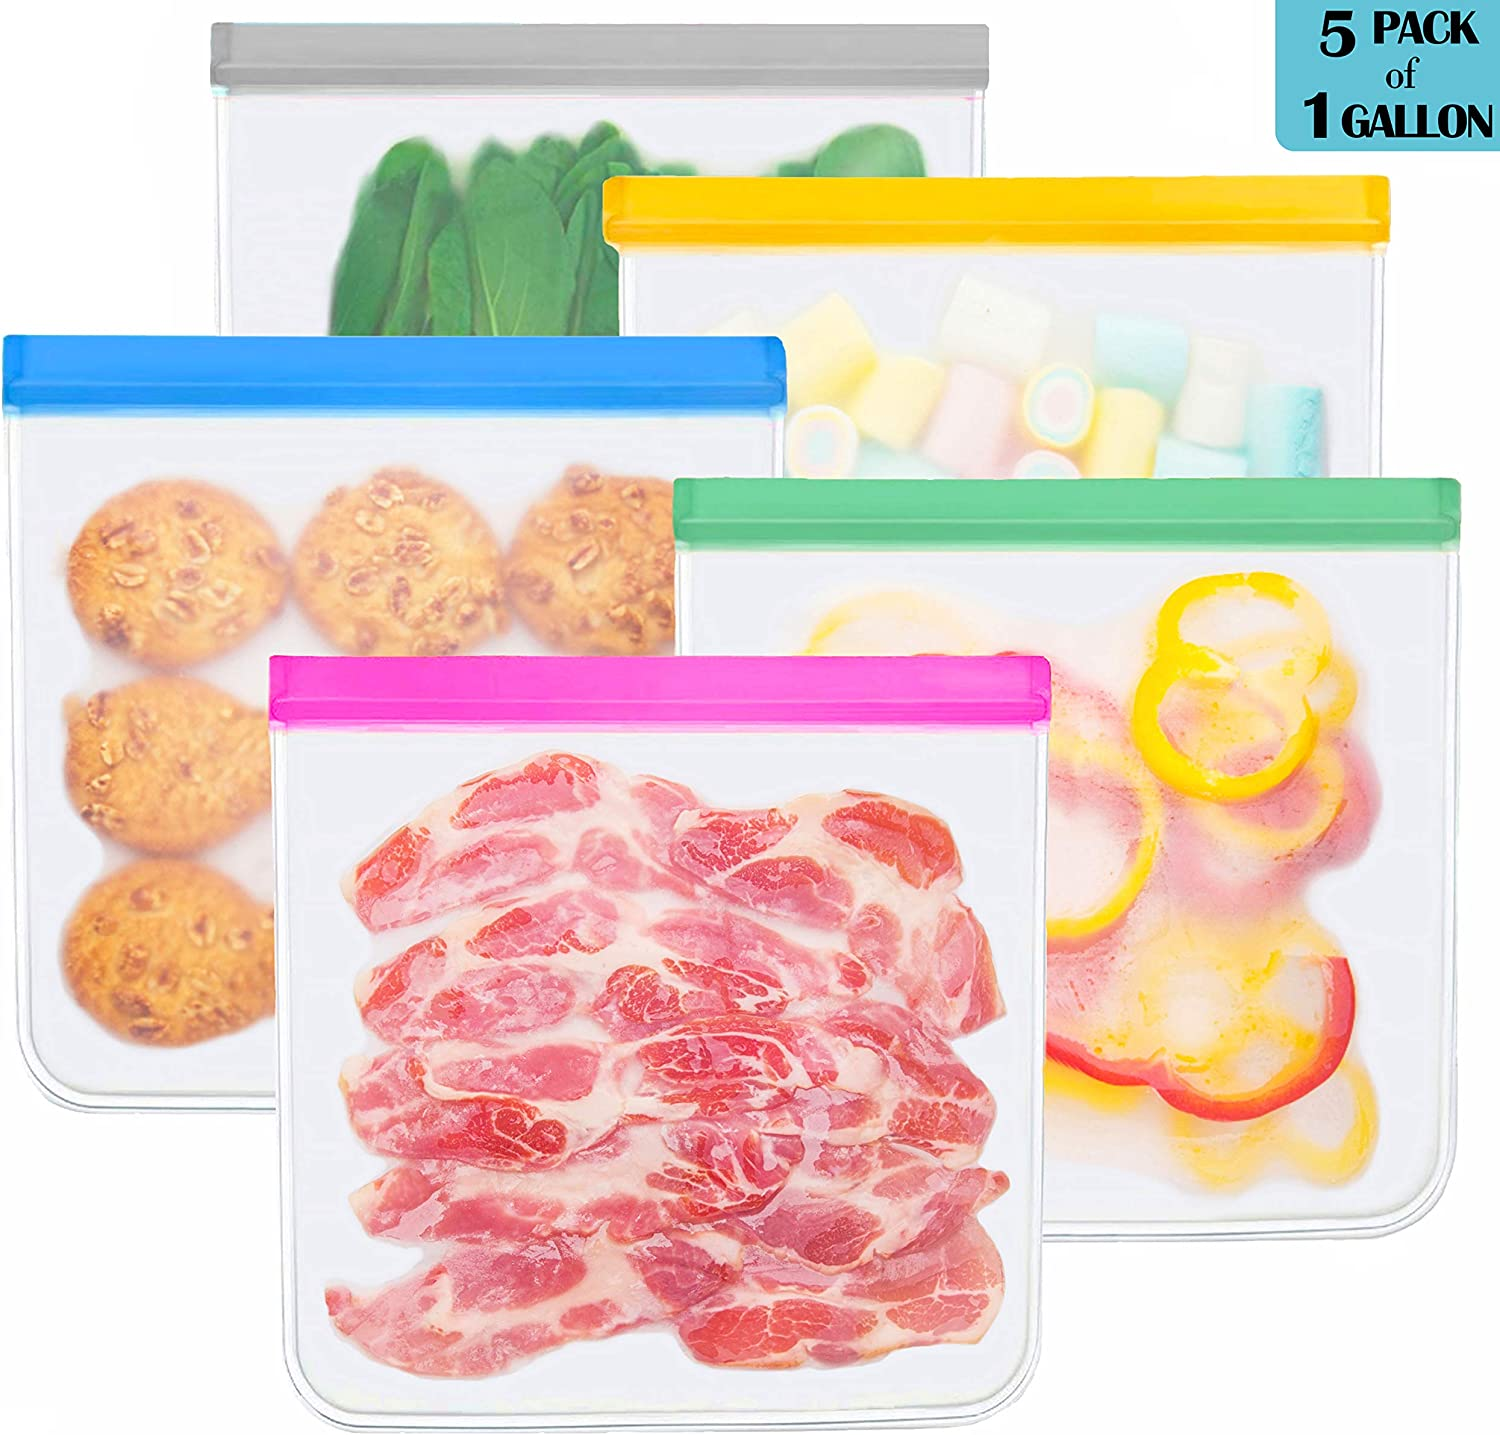 Reusable Gallon Storage Bags - 5 Pack BPA FREE Food Bag Reusable Sandwich Bags Ziplock Storage Bags Containers Plastic Conteiner Freezer Size Zip Snack Lunch Sous Vide for Marinate Meats Fruit